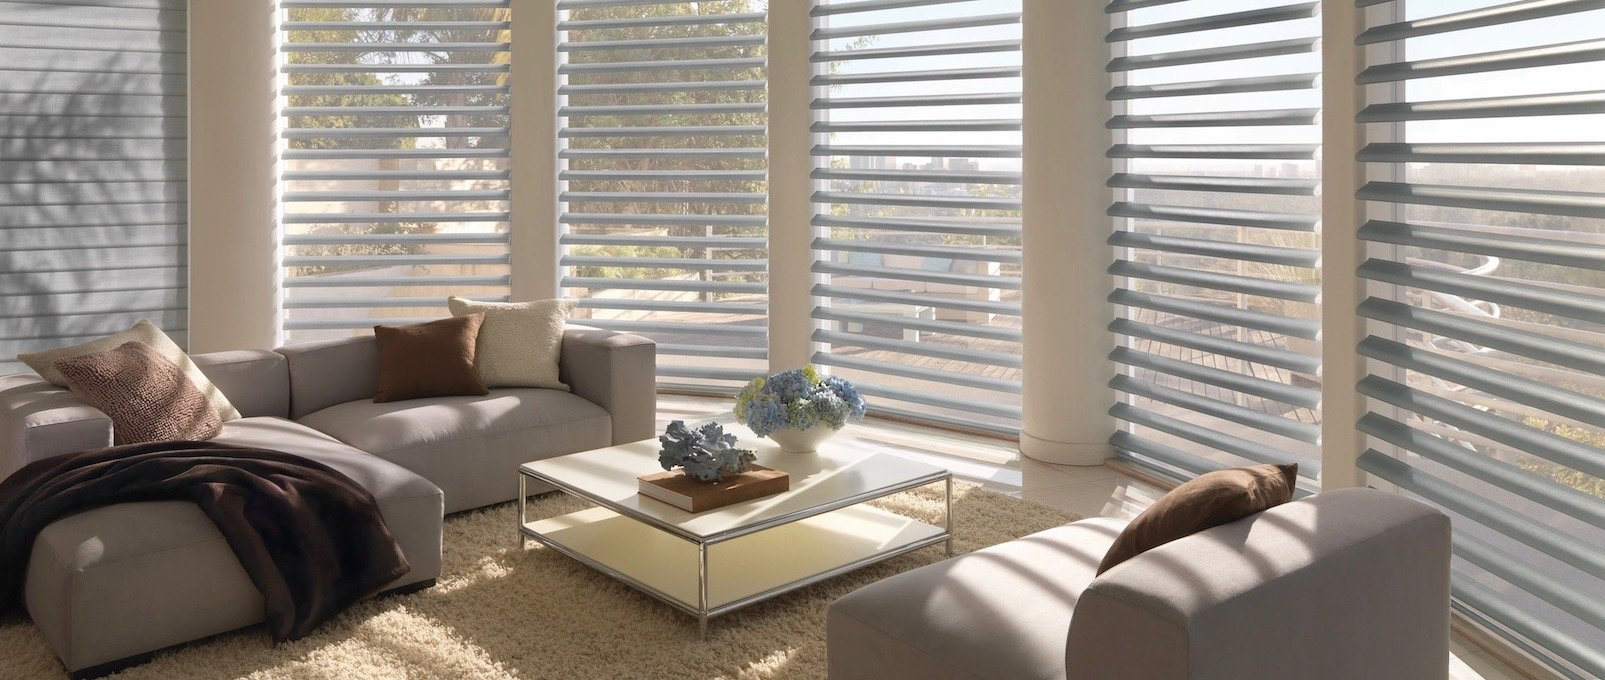 Satin Metallic Glacier Window Blinds